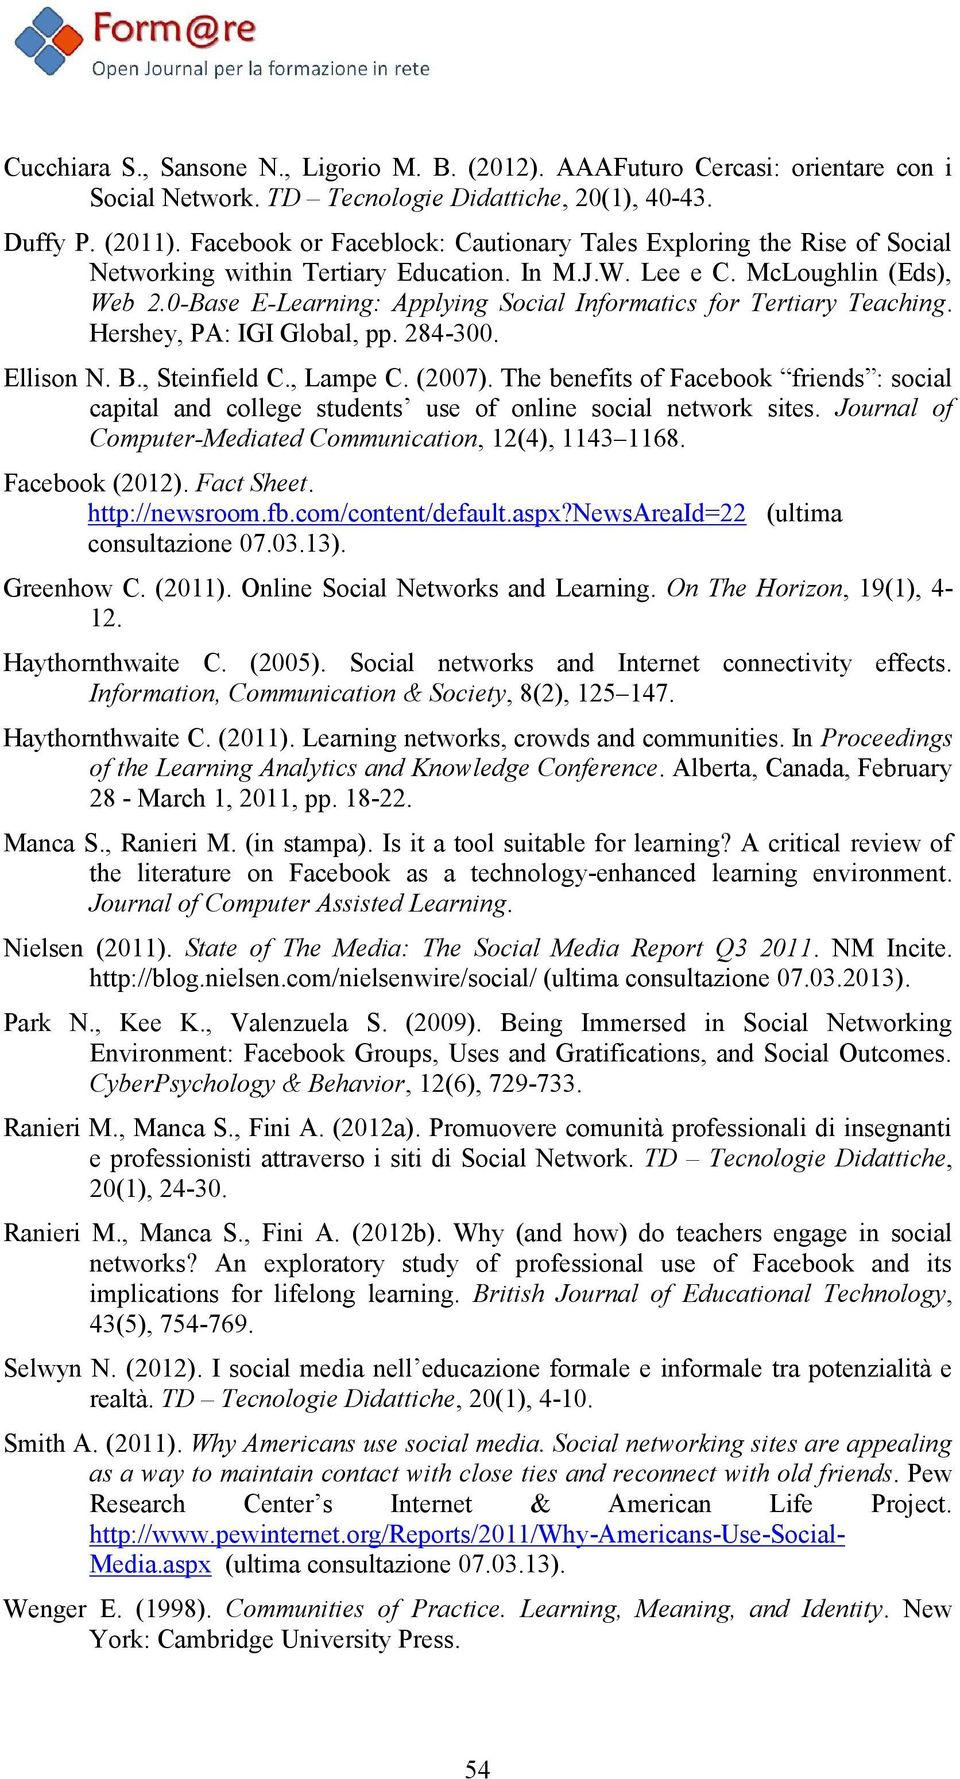 0-Base E-Learning: Applying Social Informatics for Tertiary Teaching. Hershey, PA: IGI Global, pp. 284-300. Ellison N. B., Steinfield C., Lampe C. (2007).